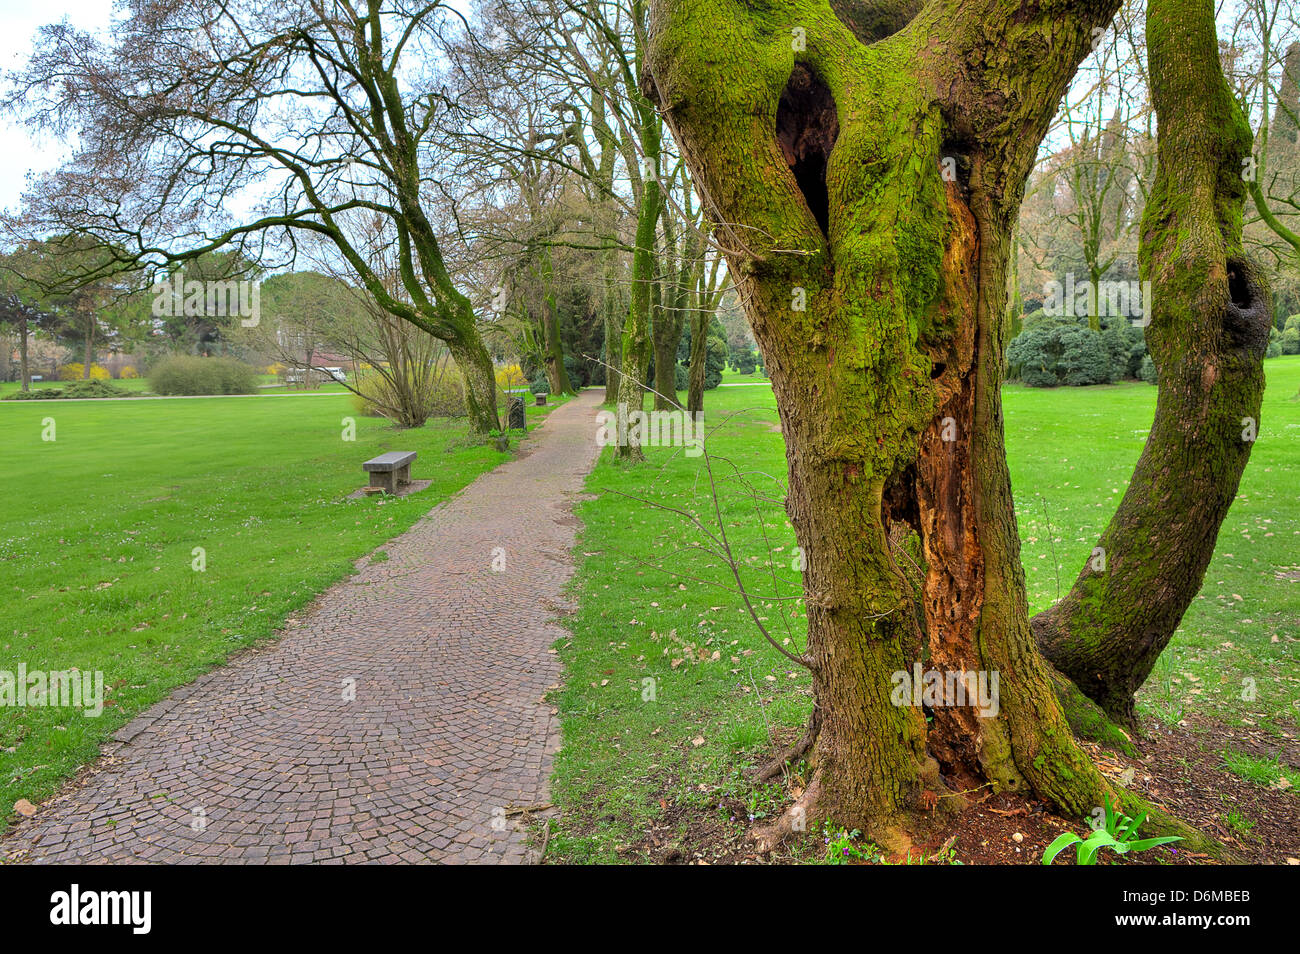 Old tree trunk covered with green moss and narrow walkway among green meadows in botanical park Sigurta in Italy. - Stock Image